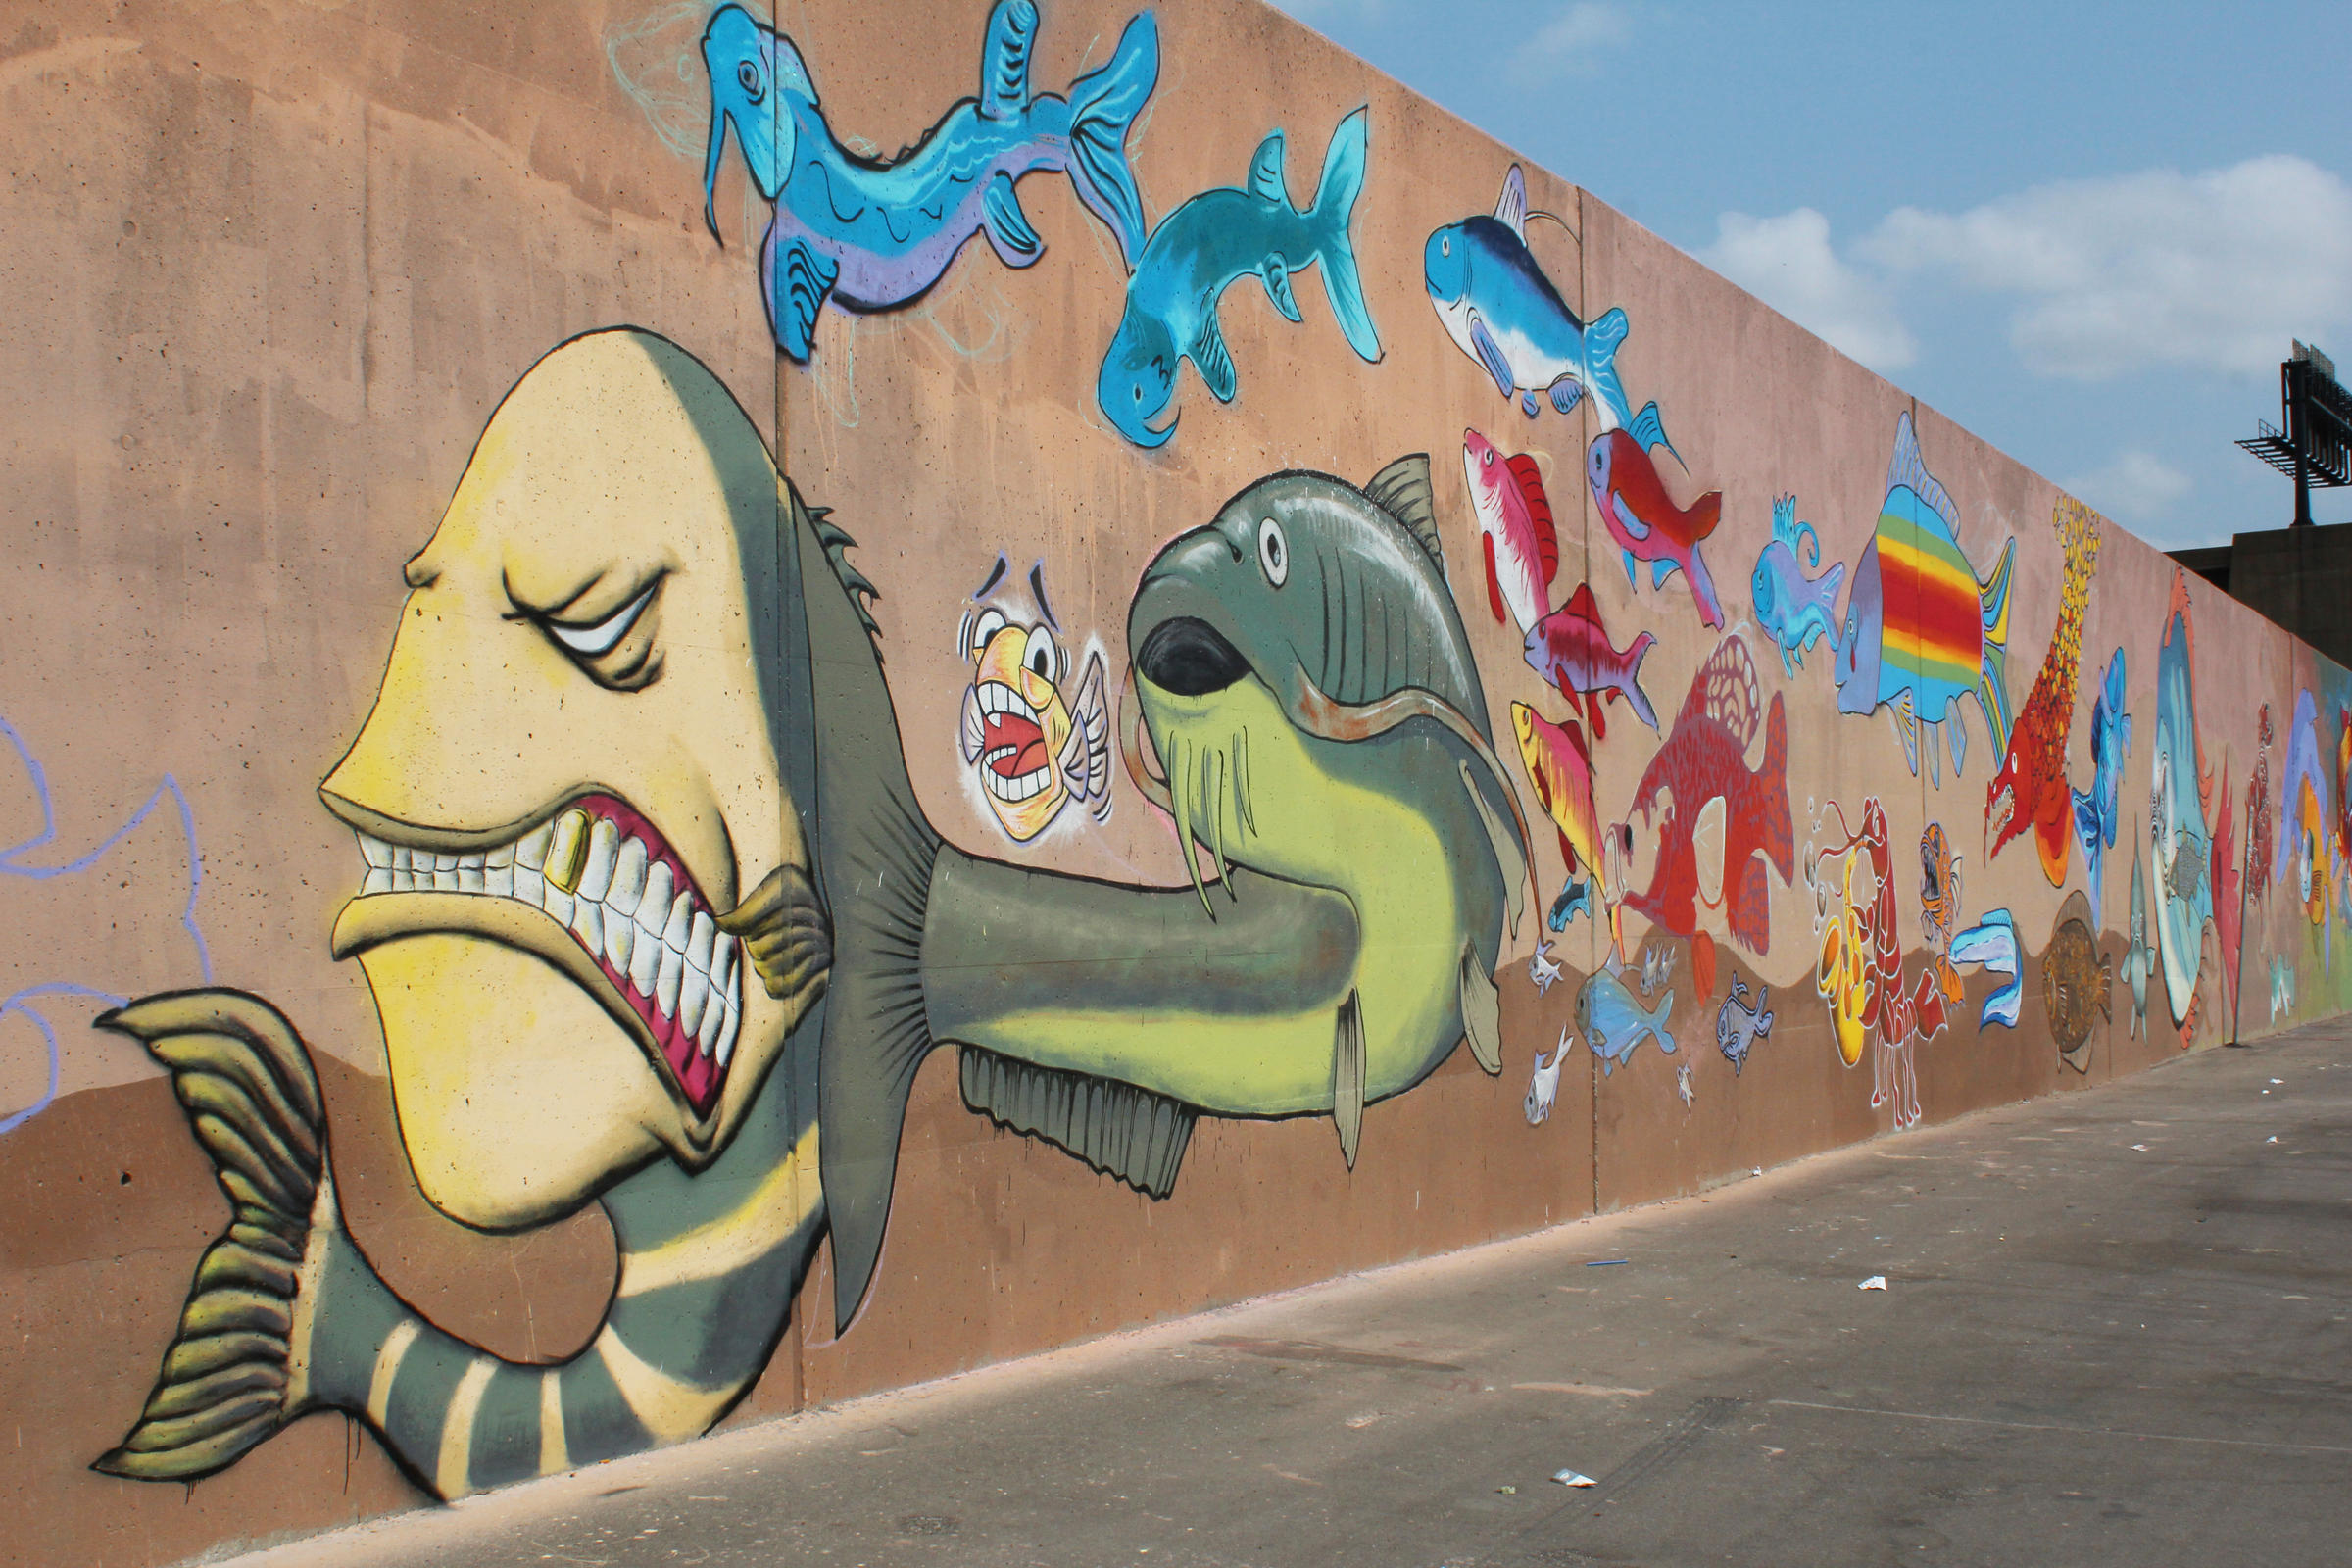 Graffiti wall pictures - The Mural Was Composed Largely Using Techniques And Styles Established In Graffiti Tradition